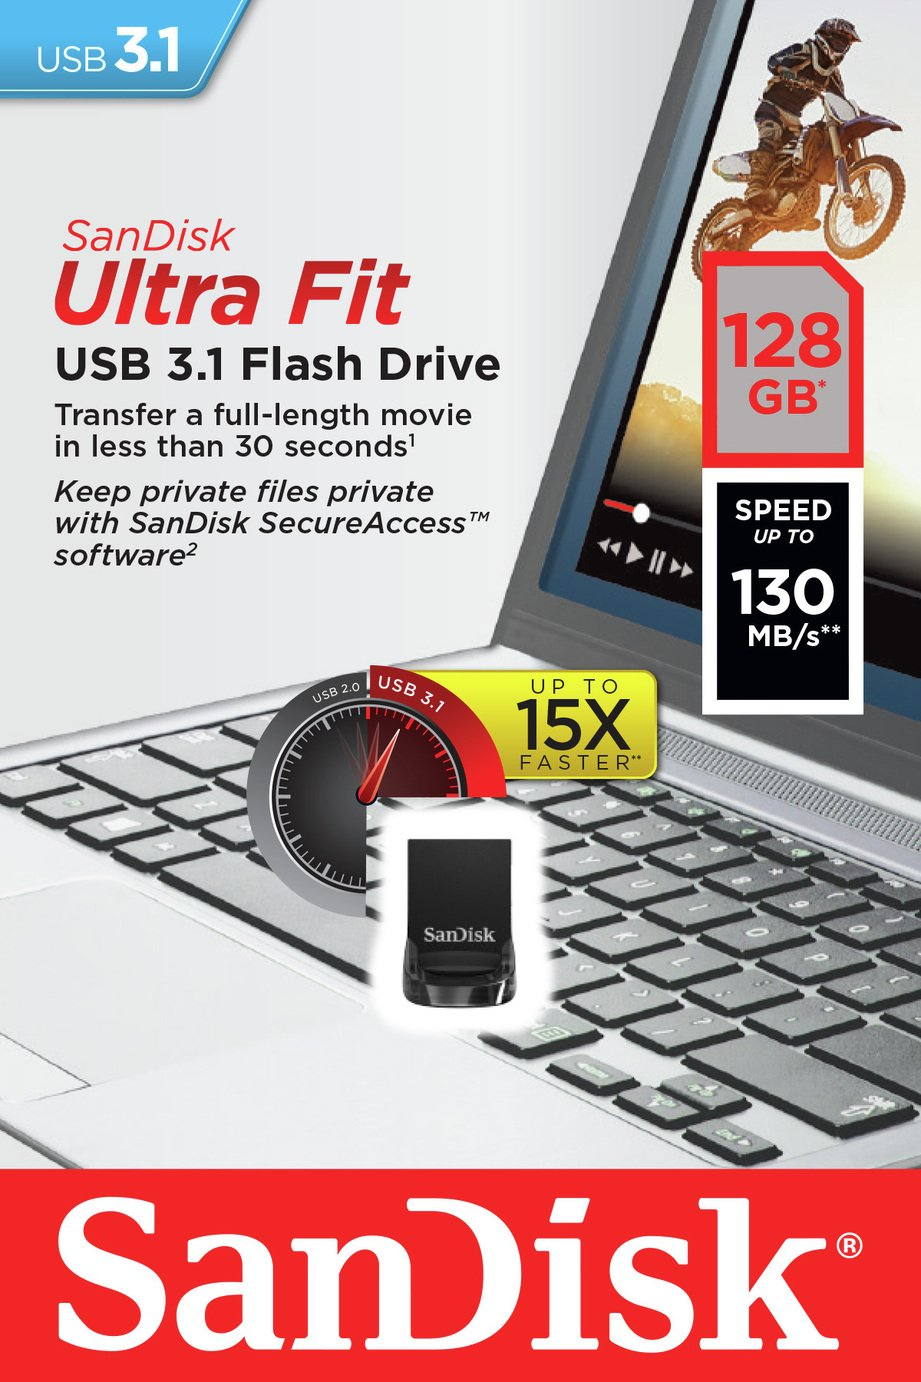 SanDisk Ultra Fit 130MB/s USB 3.1 Flash Drive - 128GB